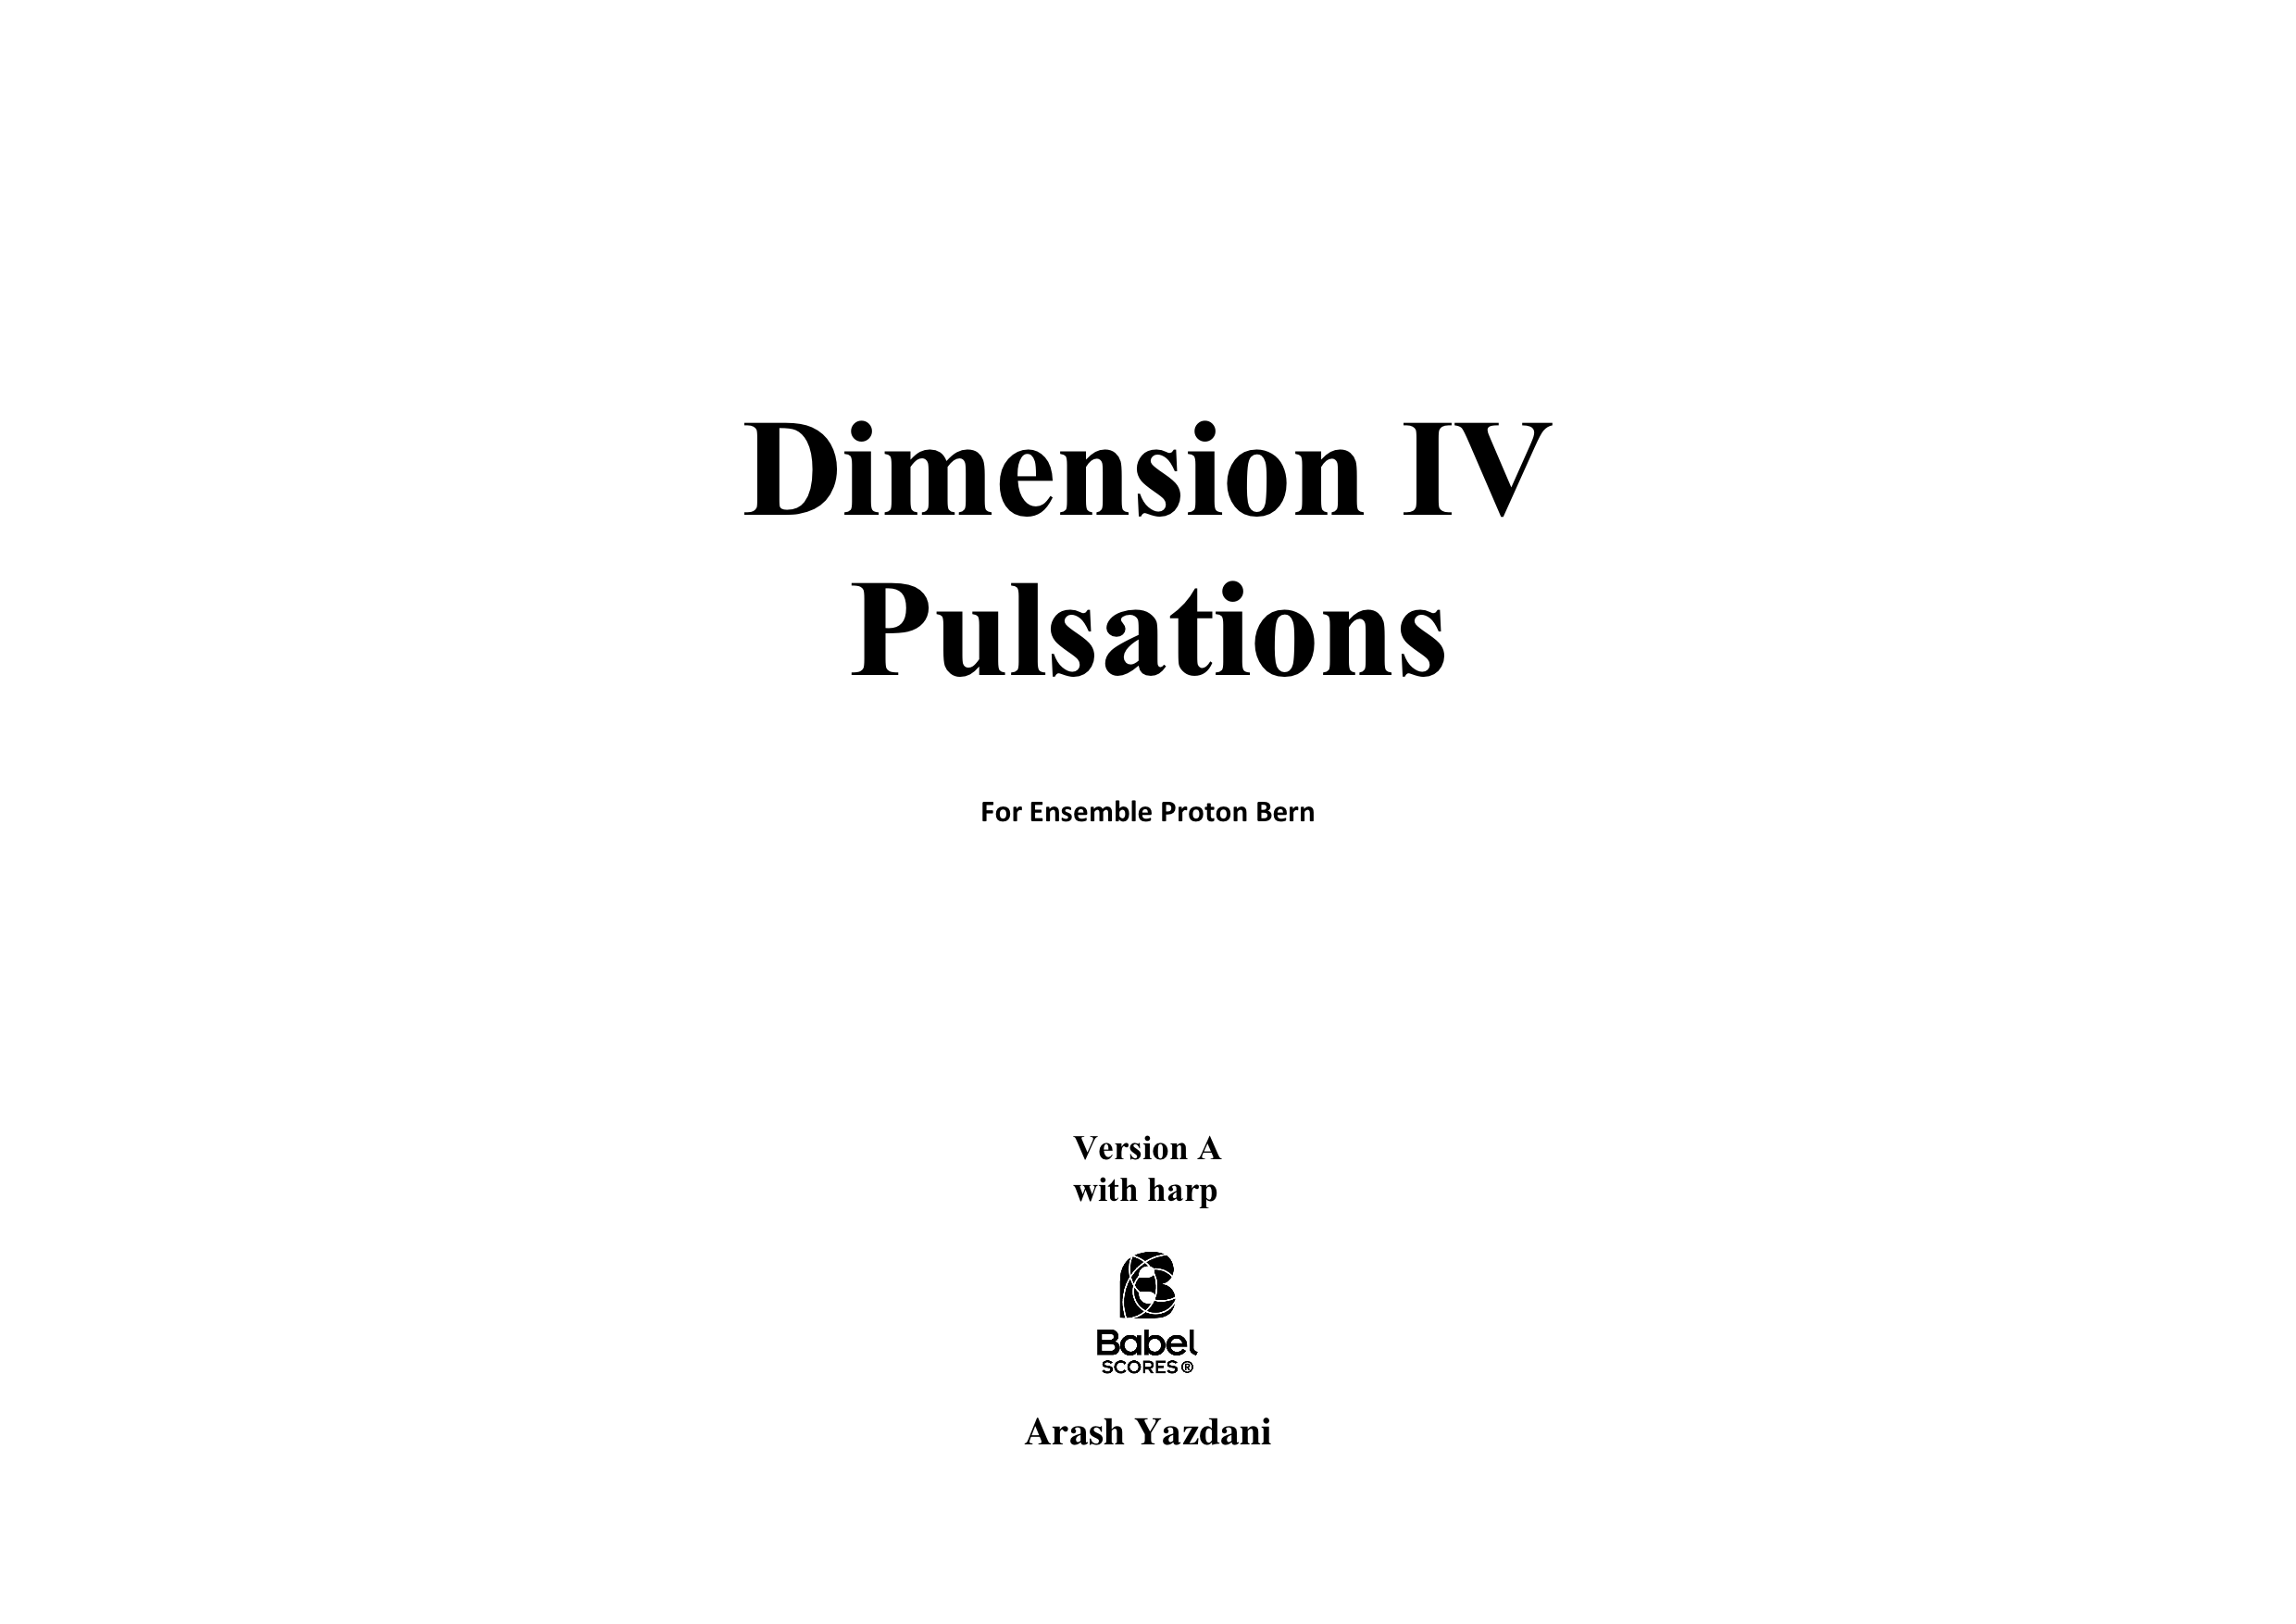 Dimension IV version A A3 z 3 1 711